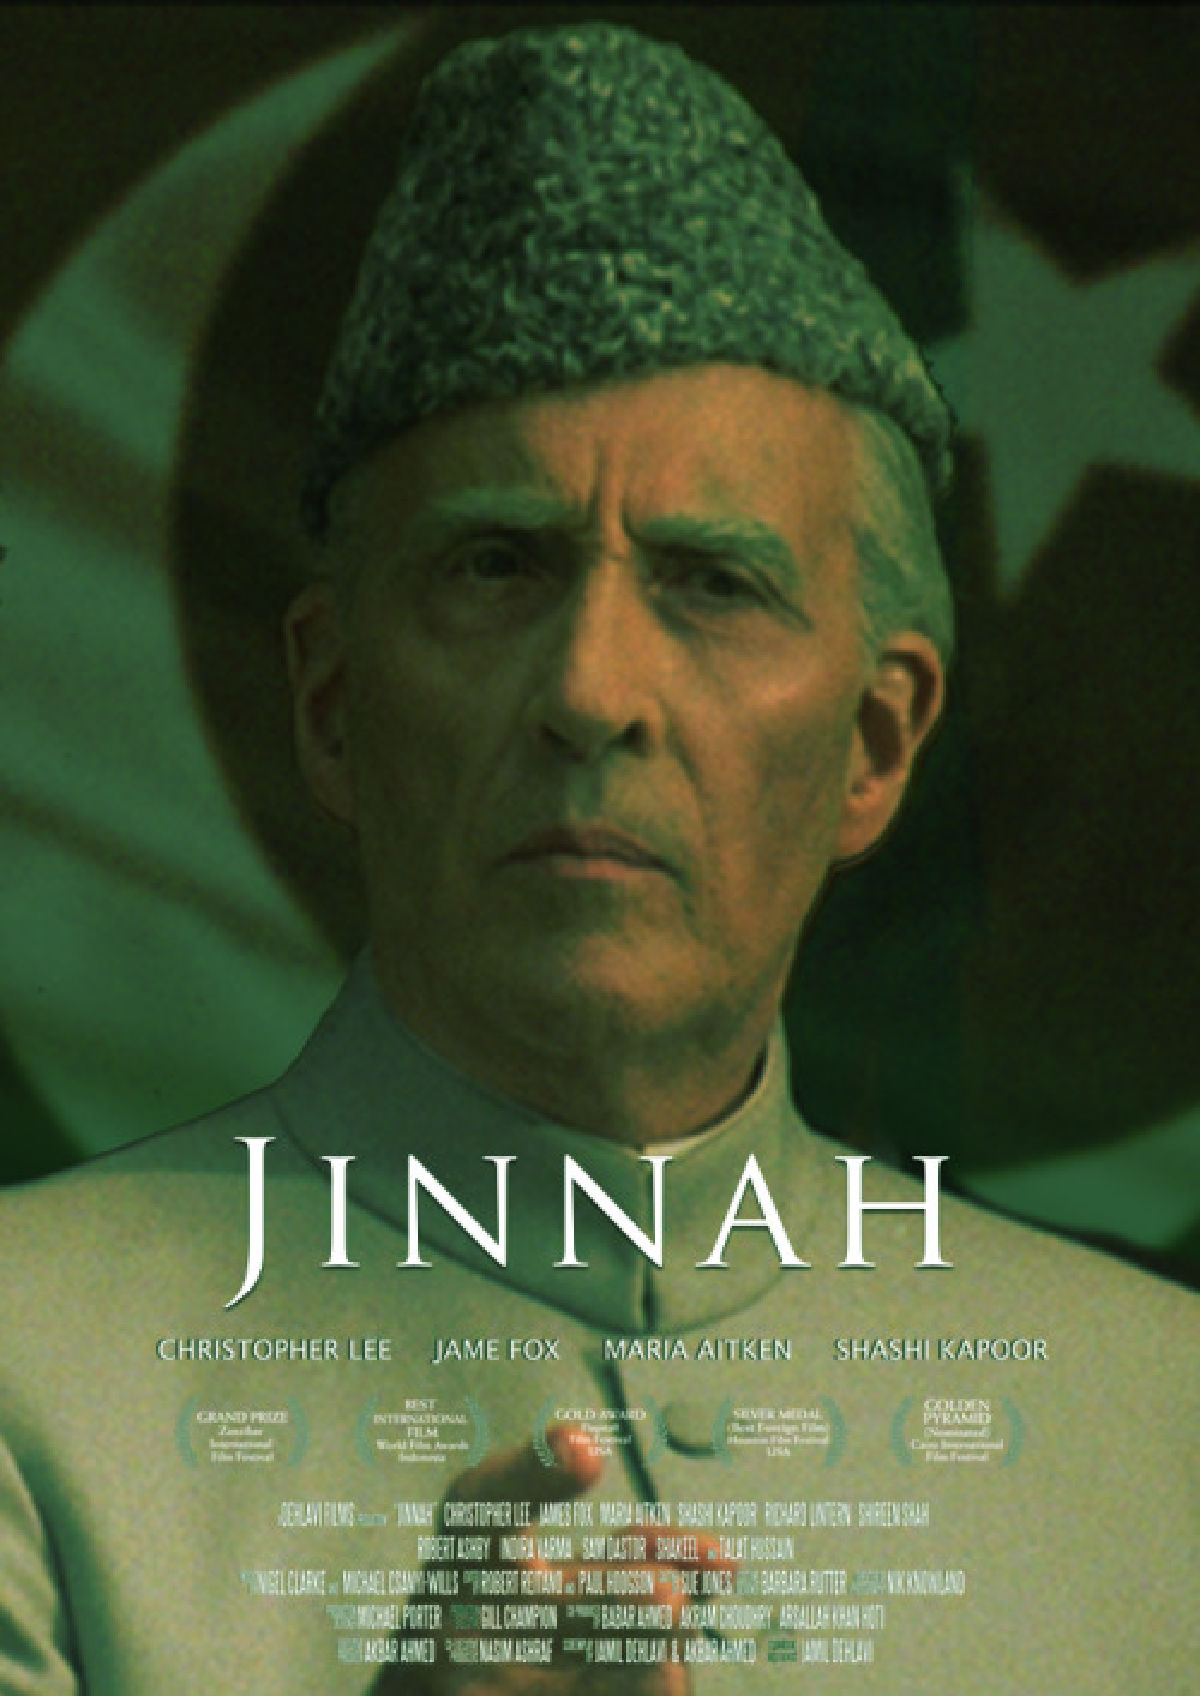 'Jinnah' movie poster